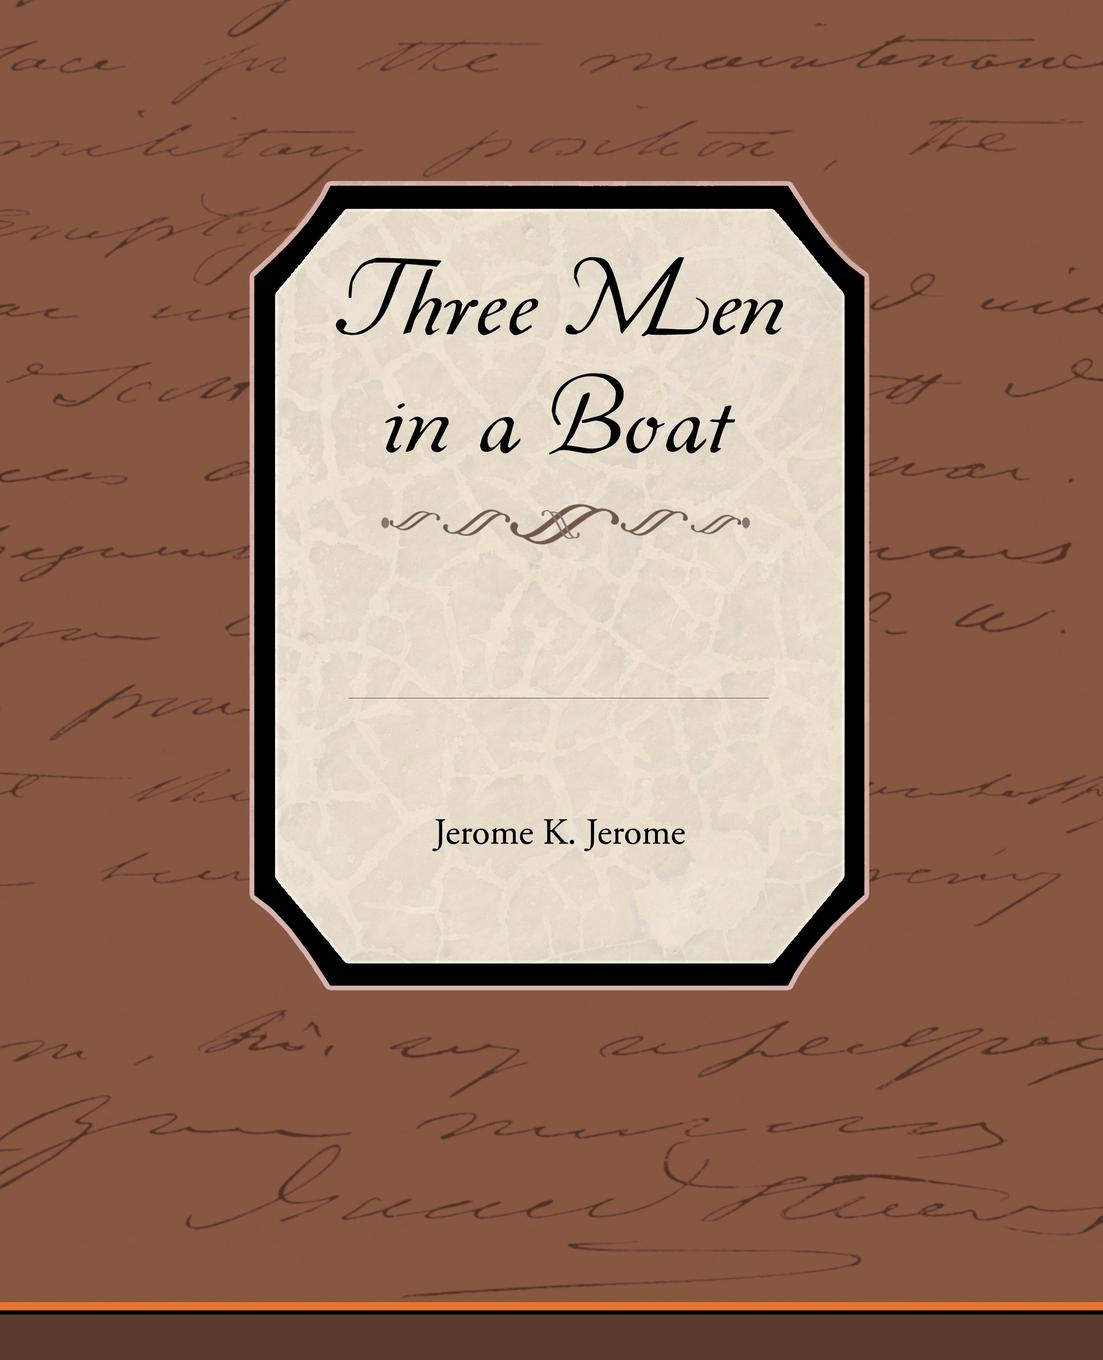 Jerome Klapka Jerome Three Men in a Boat jerome k jerome three men in a boat